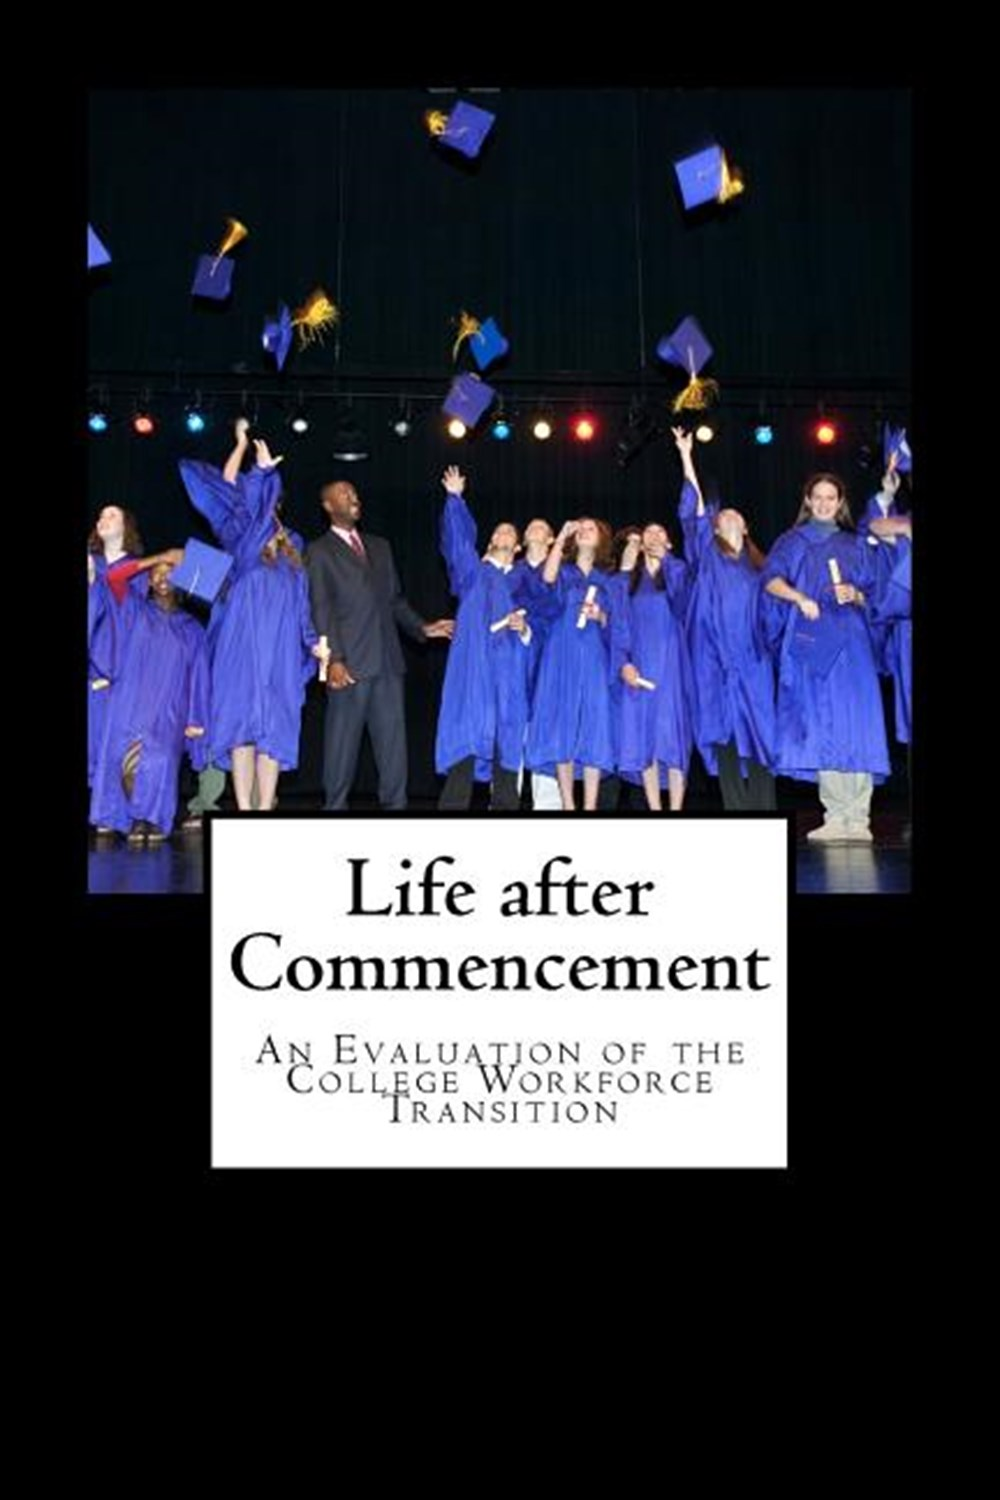 Life after Commencement A Evaluation of a College Workforce Transition